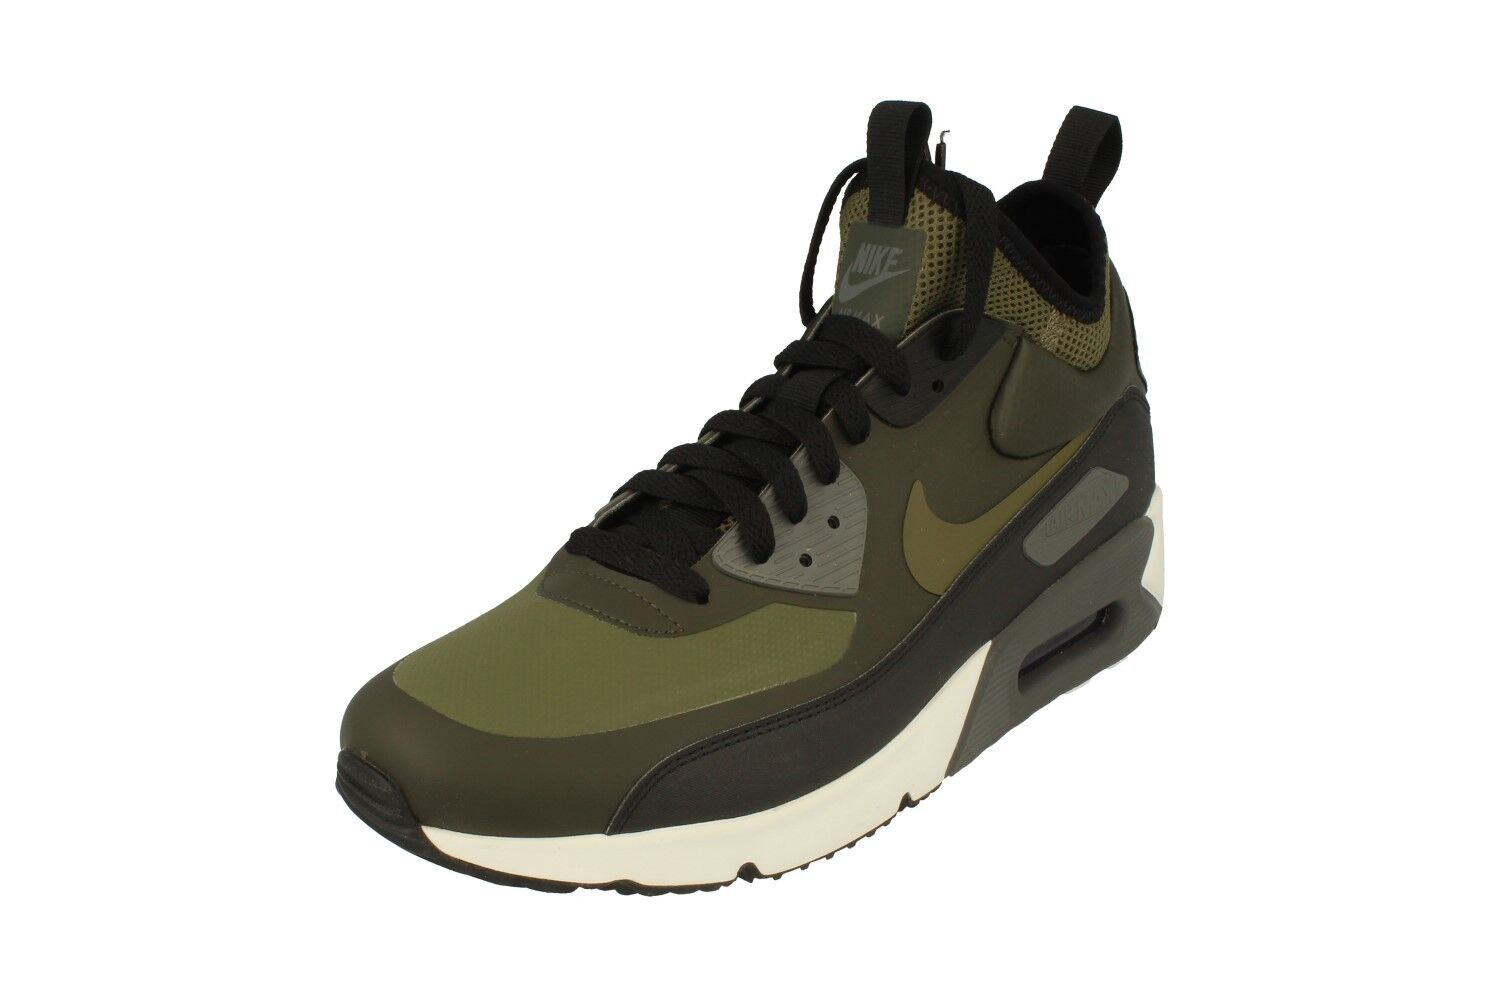 Nike Air Max 90 Ultra Ultra Ultra Mid Winter Mens Hi Top Trainers 924458 Sneakers shoes 300 0a3279